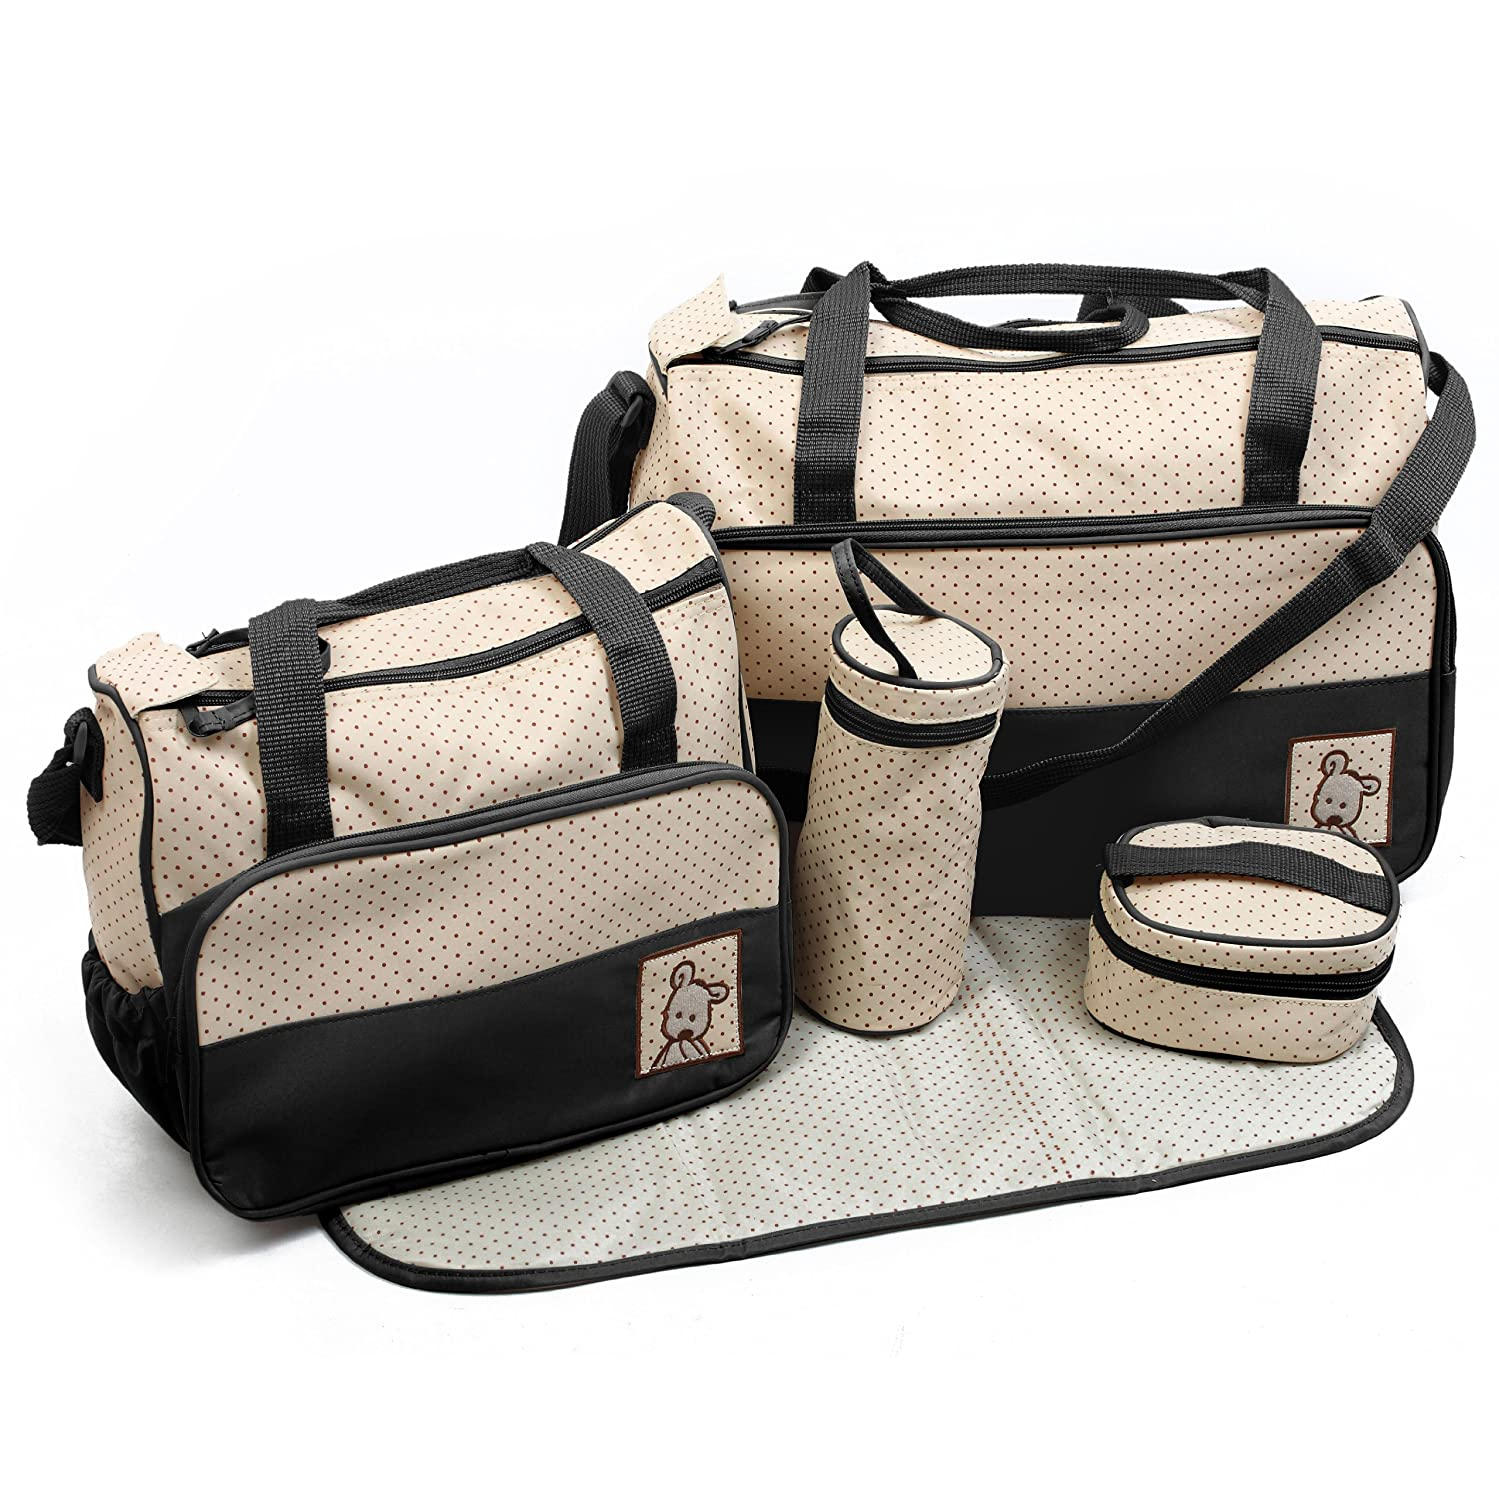 just4baby Black 5pcs Baby Nappy Changing Bag Set Diaper Bags Changing Bags Set Baby Kingdom